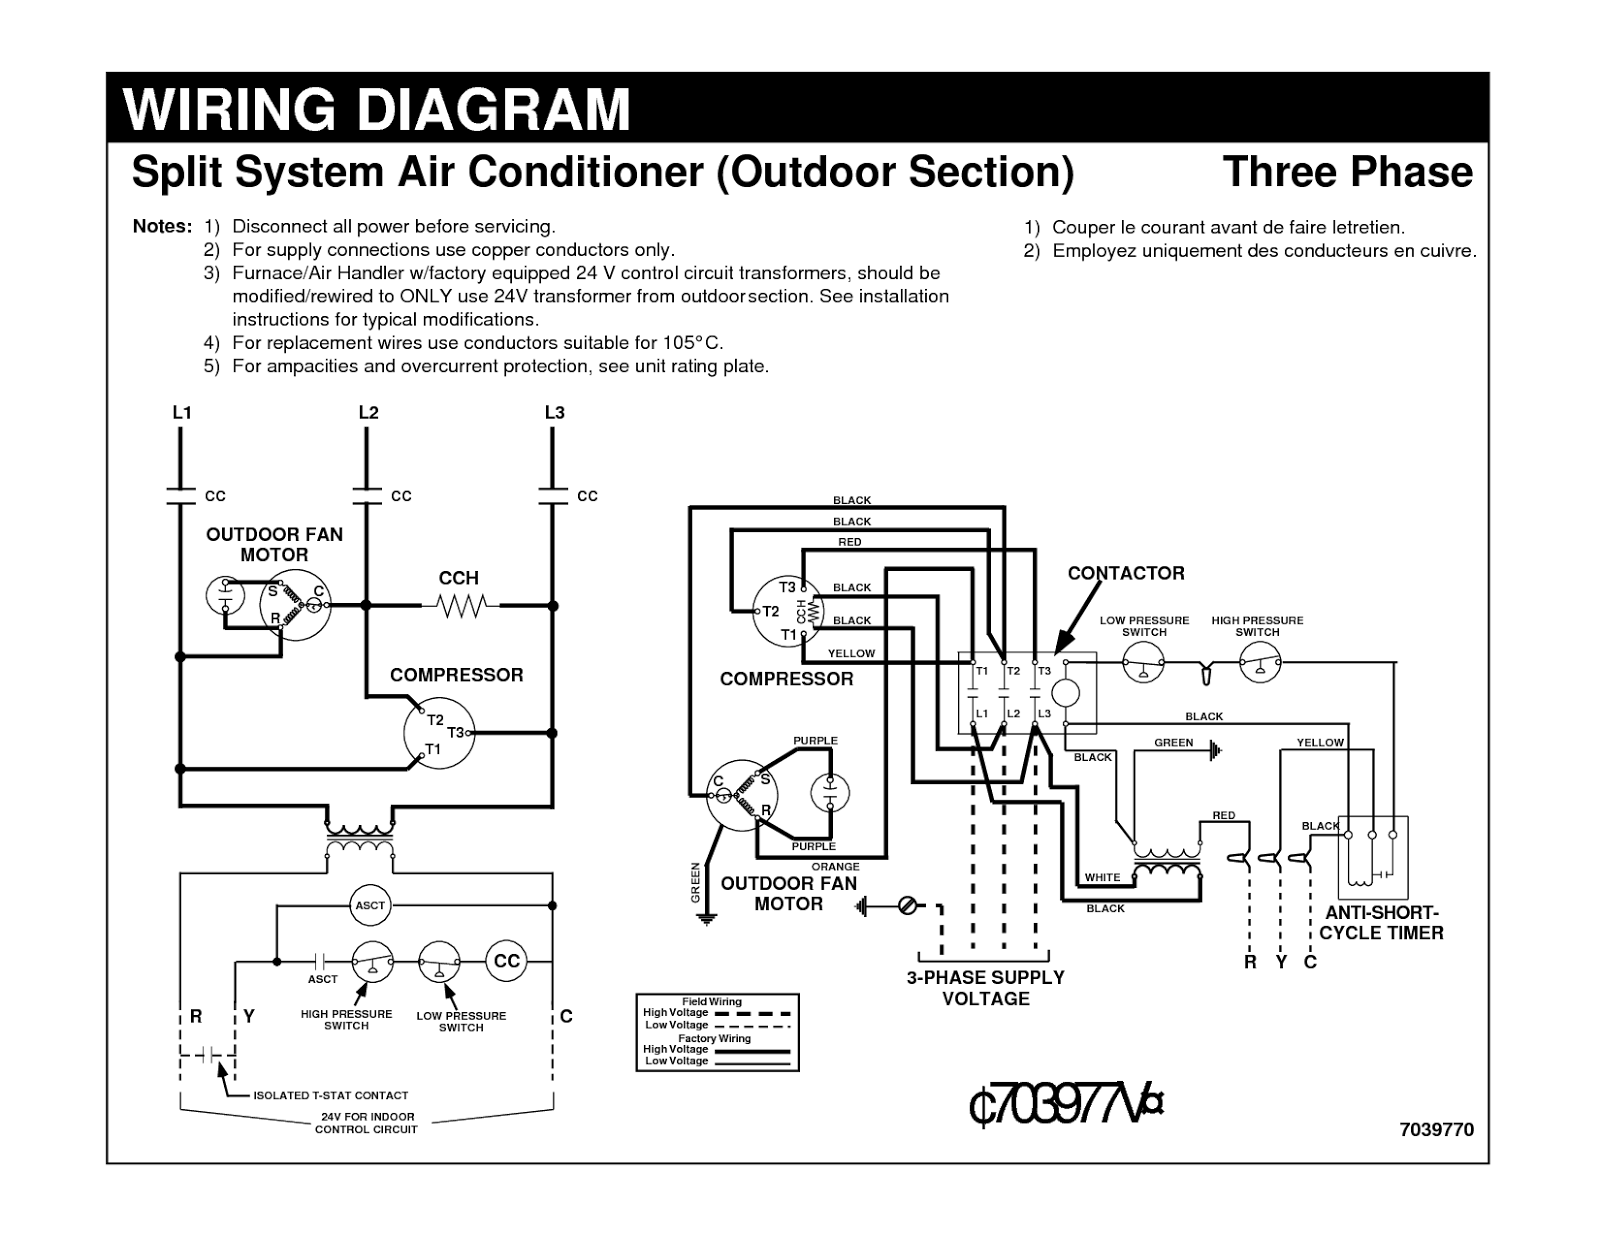 How To Read Electrical Wiring Diagrams on 2004 Buick Century Wiring Diagram